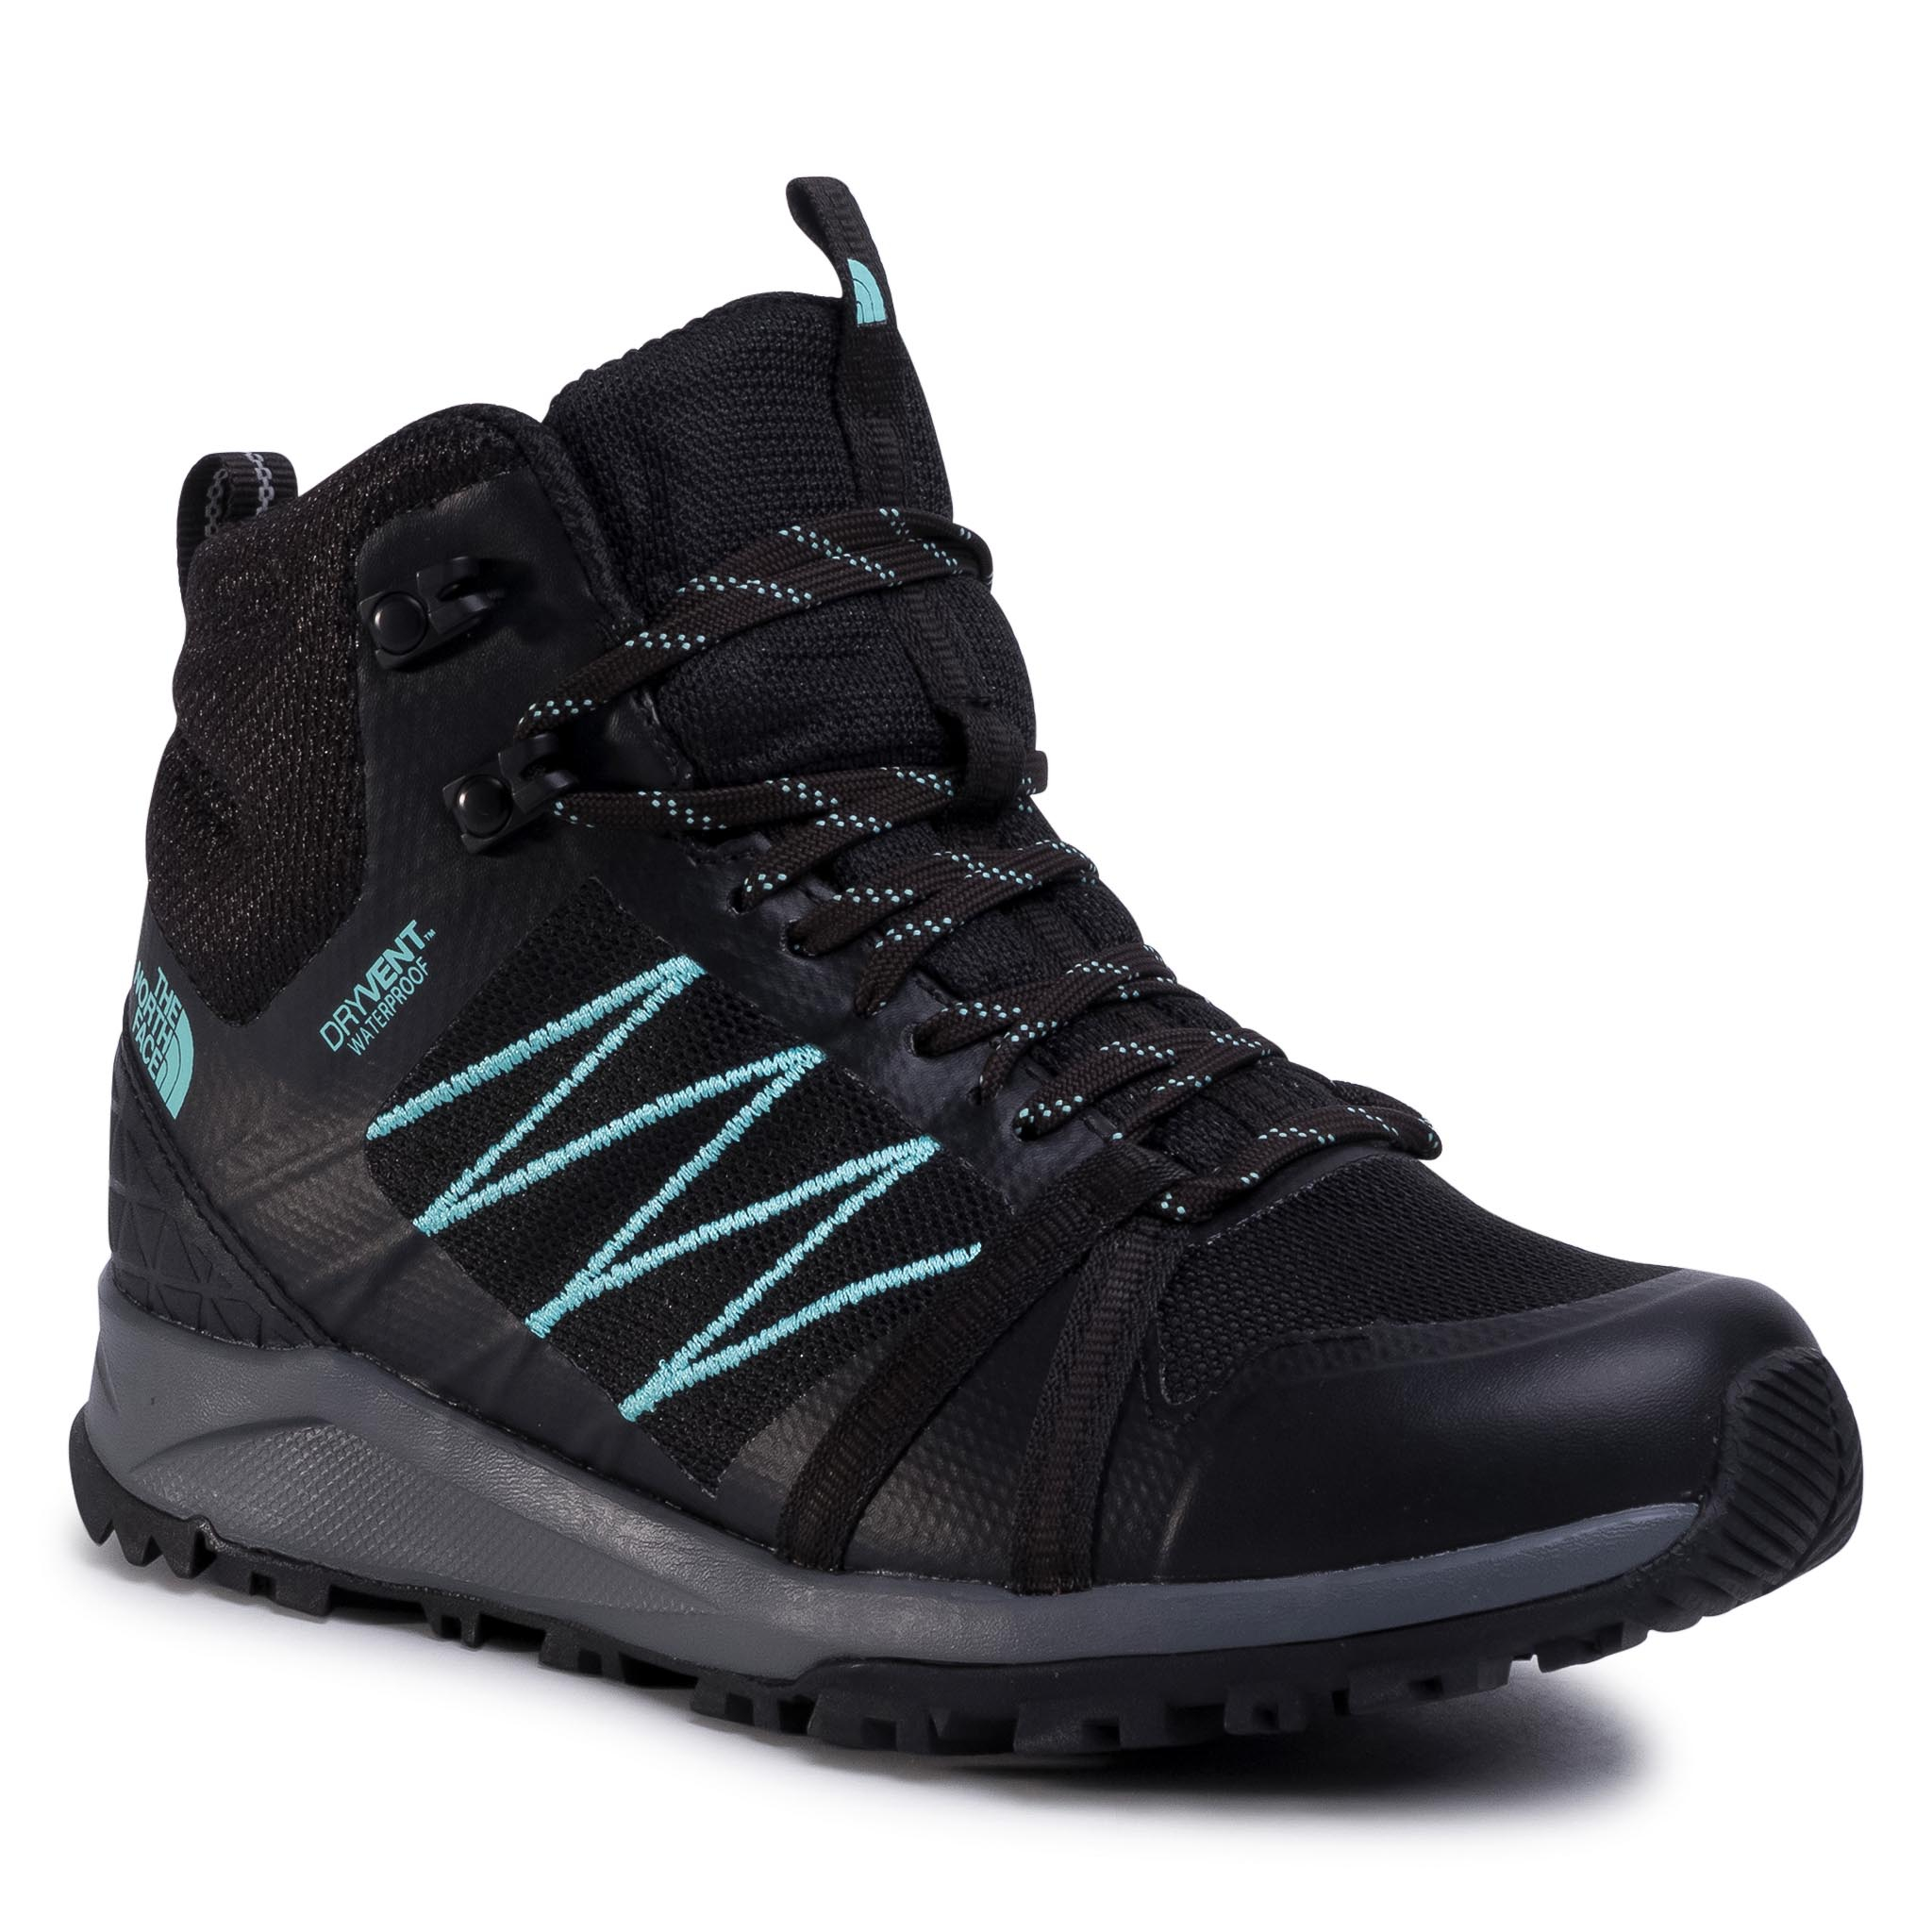 Trekkings The North Face - Litewave Fastpack Ii Mid Wp Nf0a47hfu3b Tnf Black/Waqua Splash imagine epantofi.ro 2021